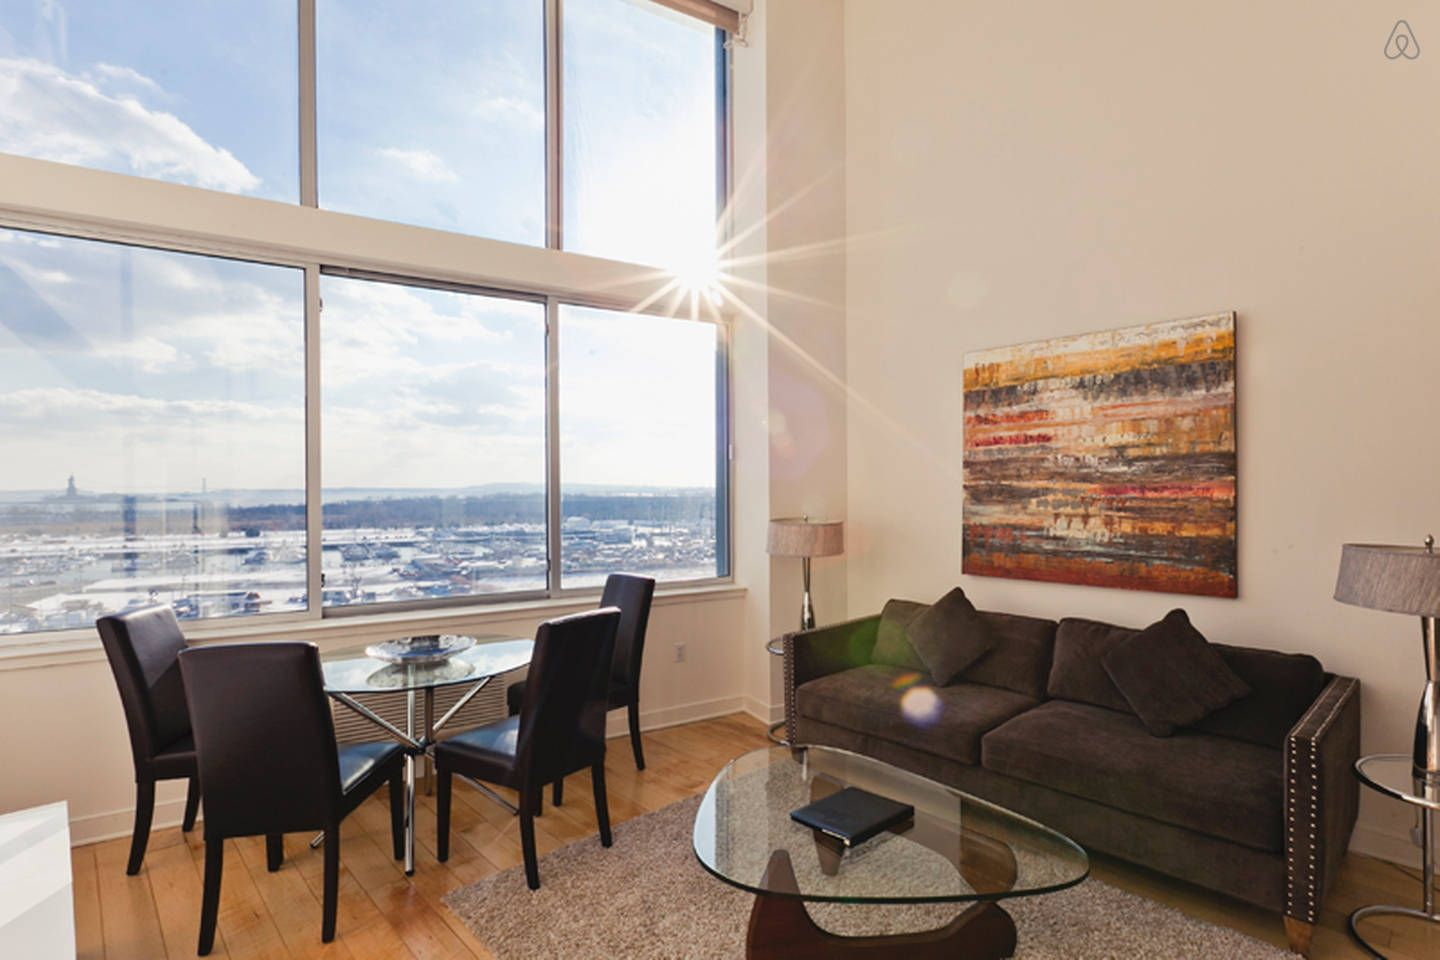 Sky City 3BR Duplex w/ Liberty View vacation rental in